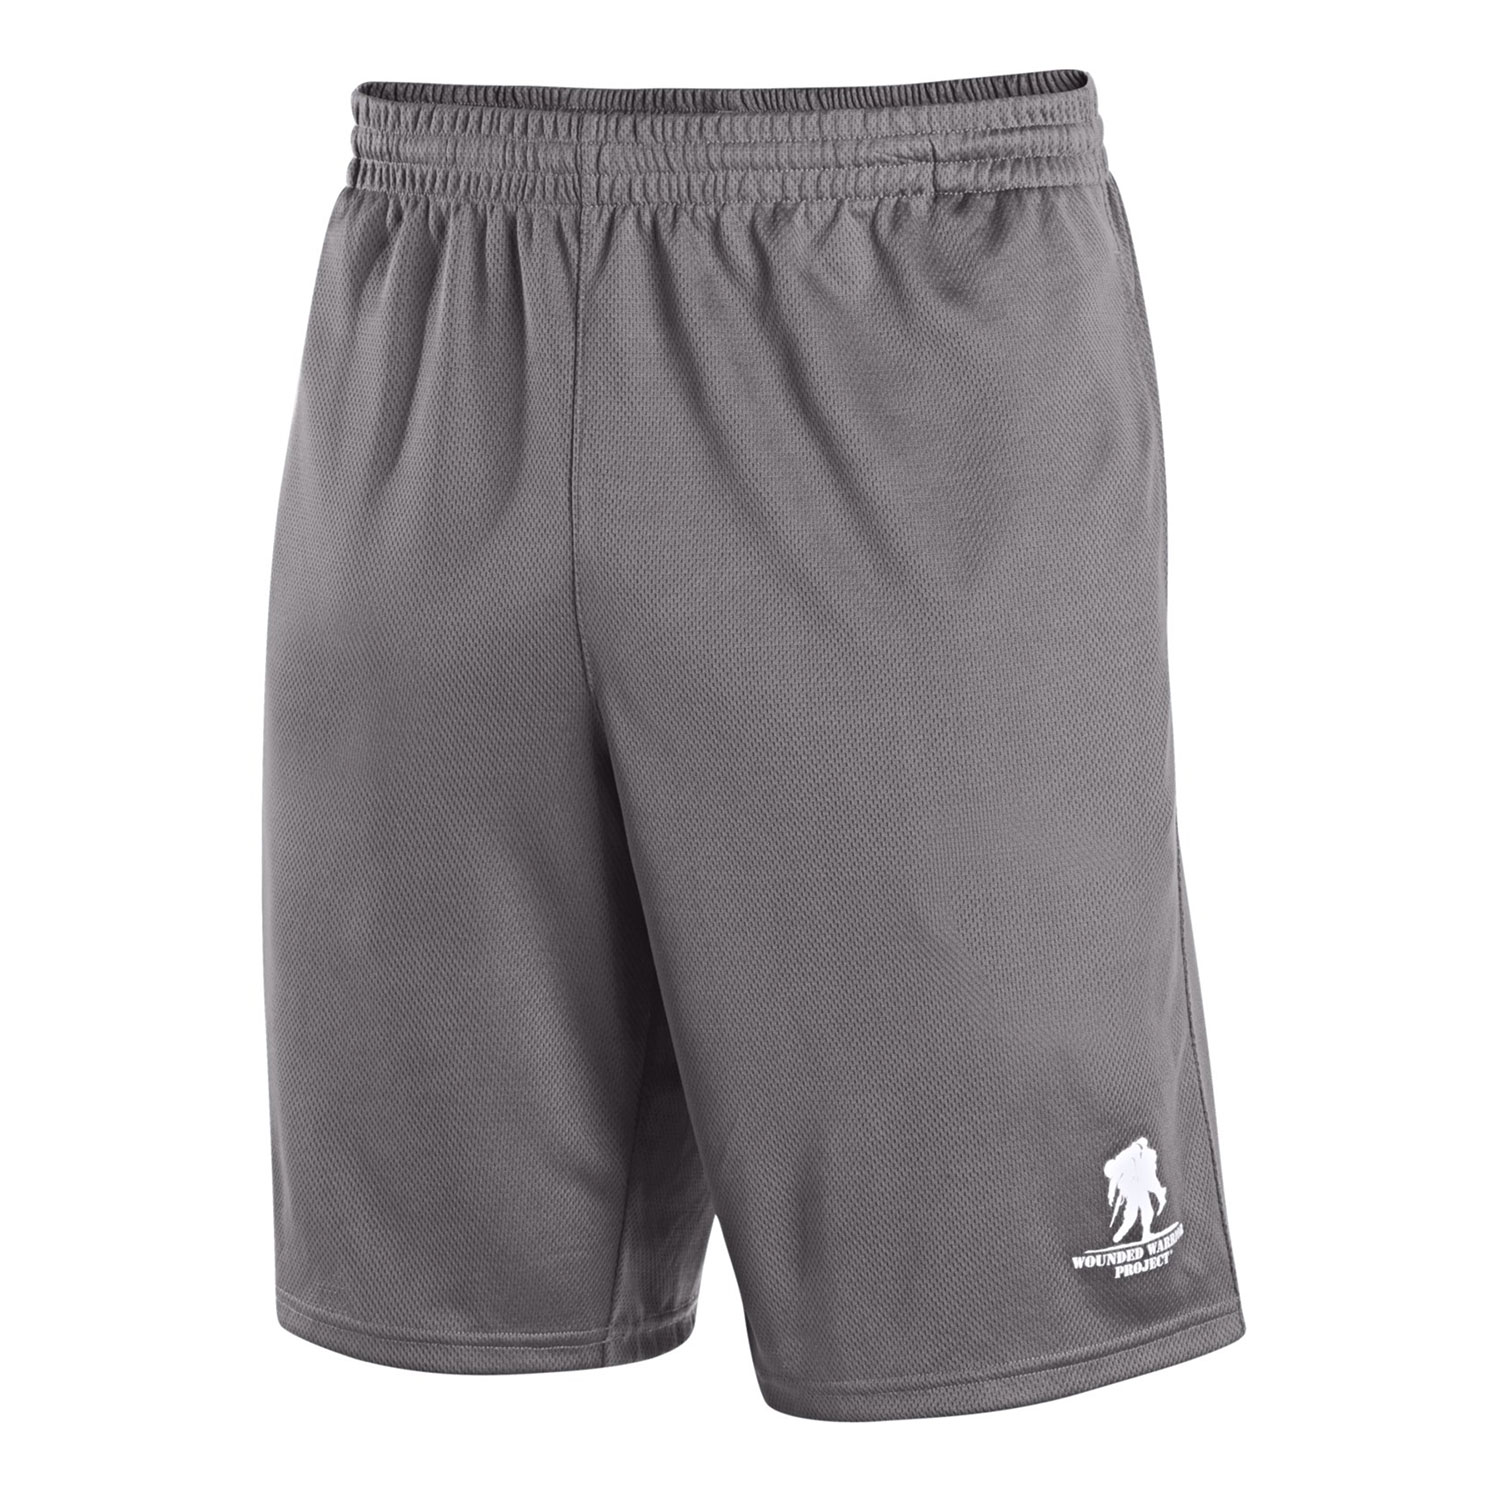 Under Armour Men's WWP Training Shorts